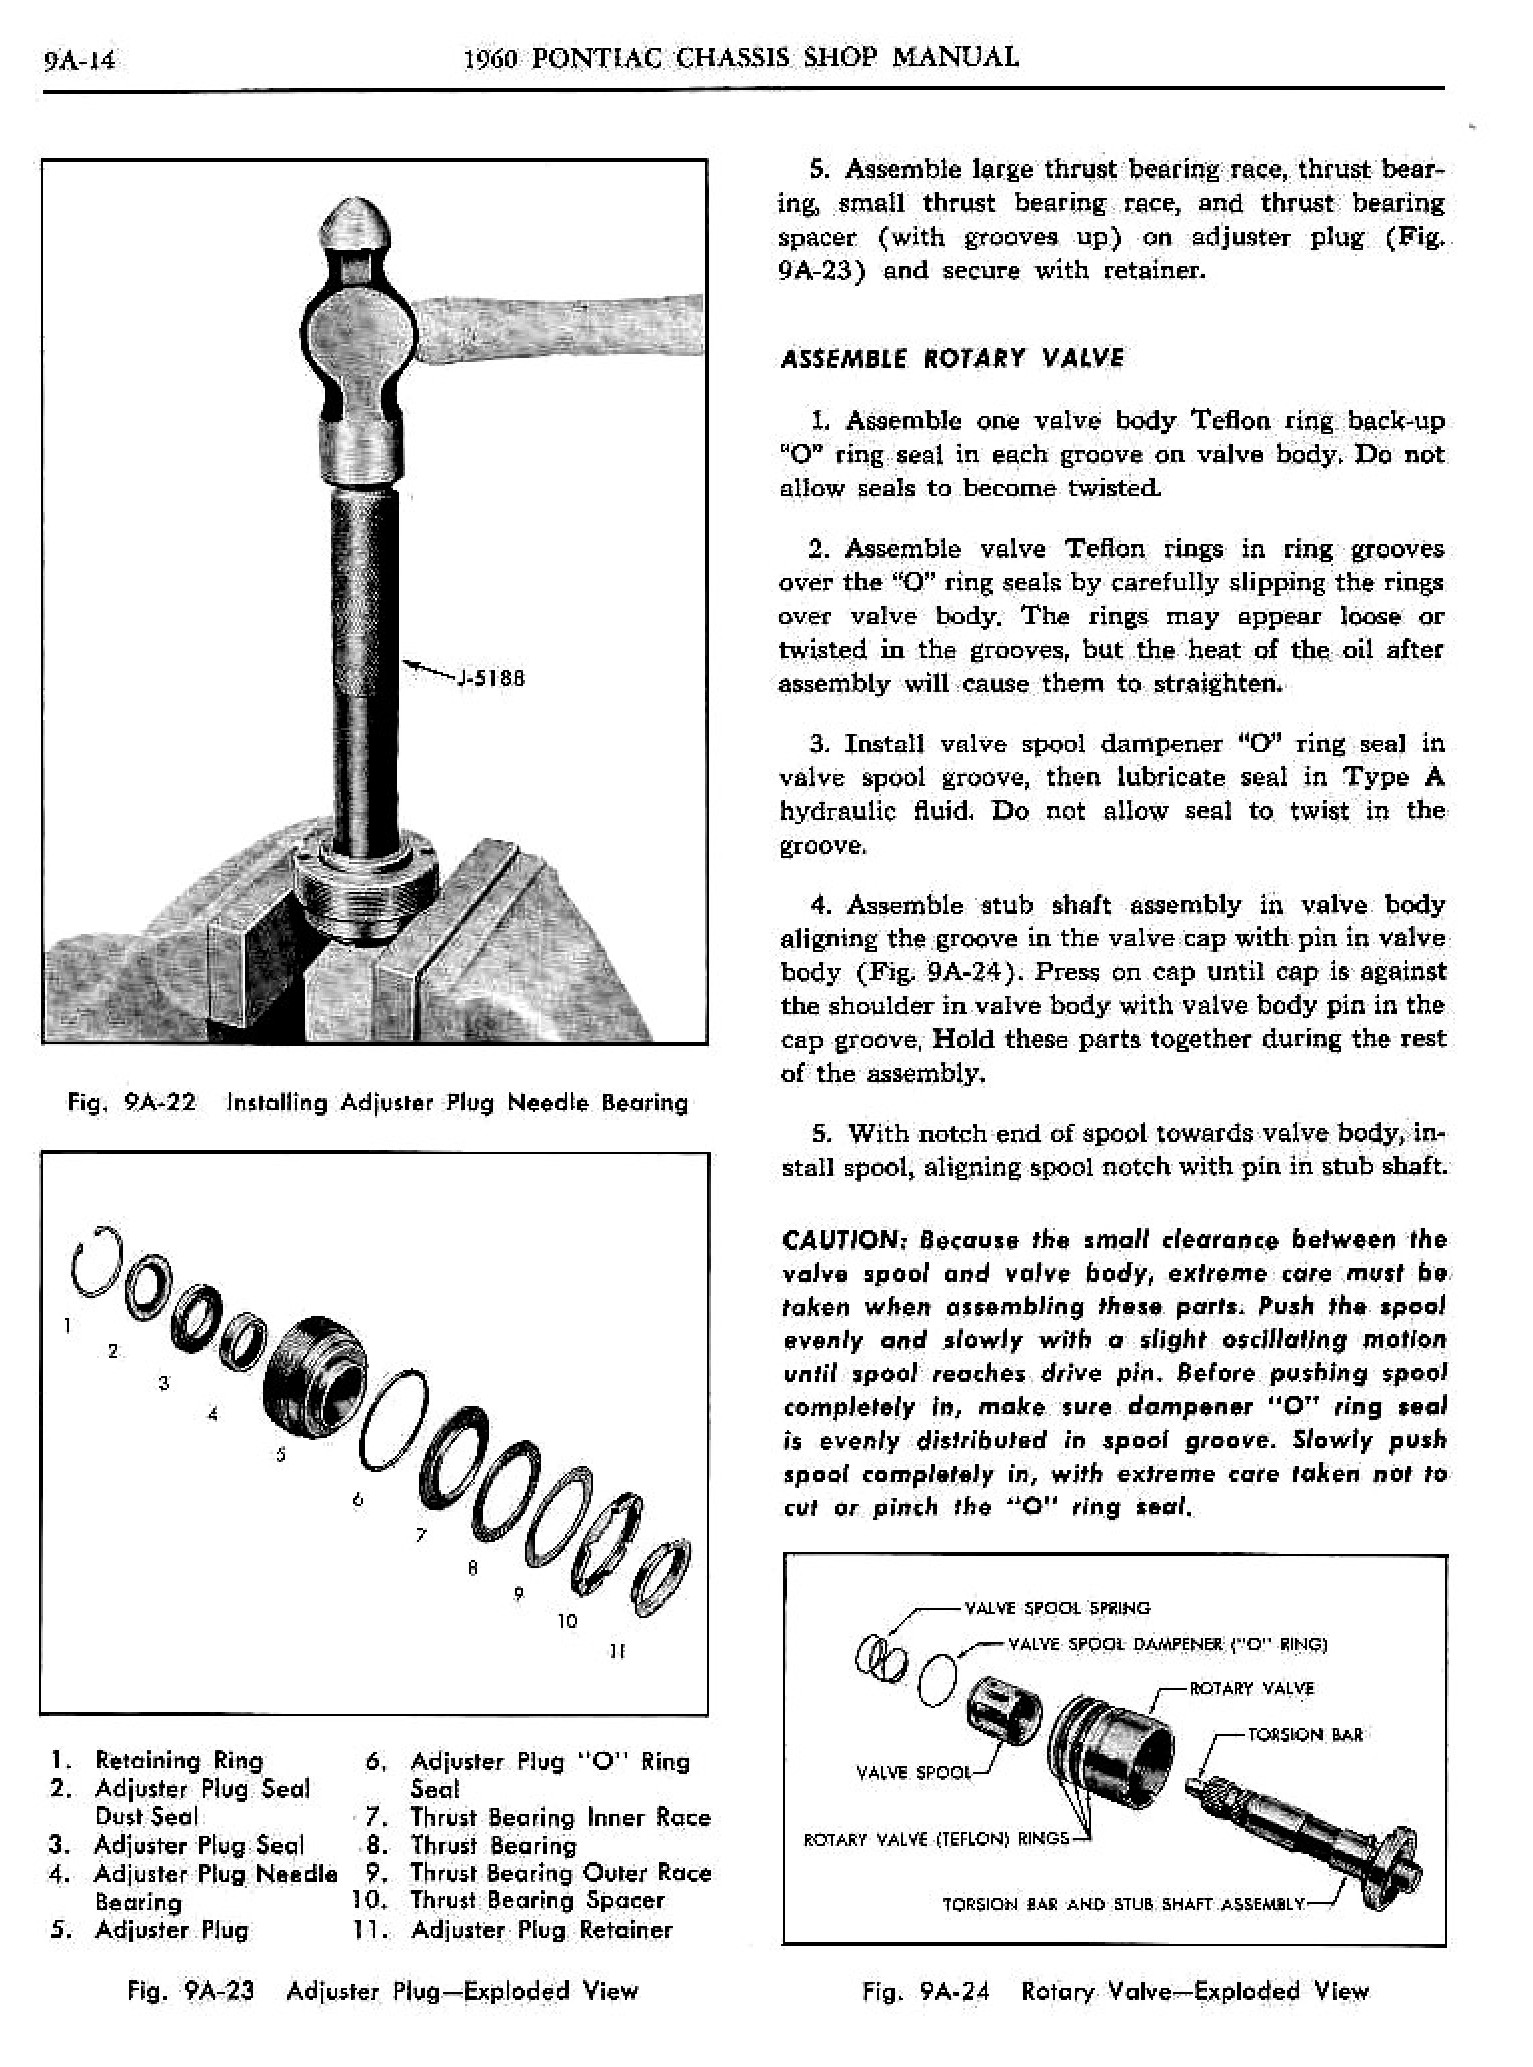 1960 Pontiac Shop Manual- Power Steering Page 14 of 39